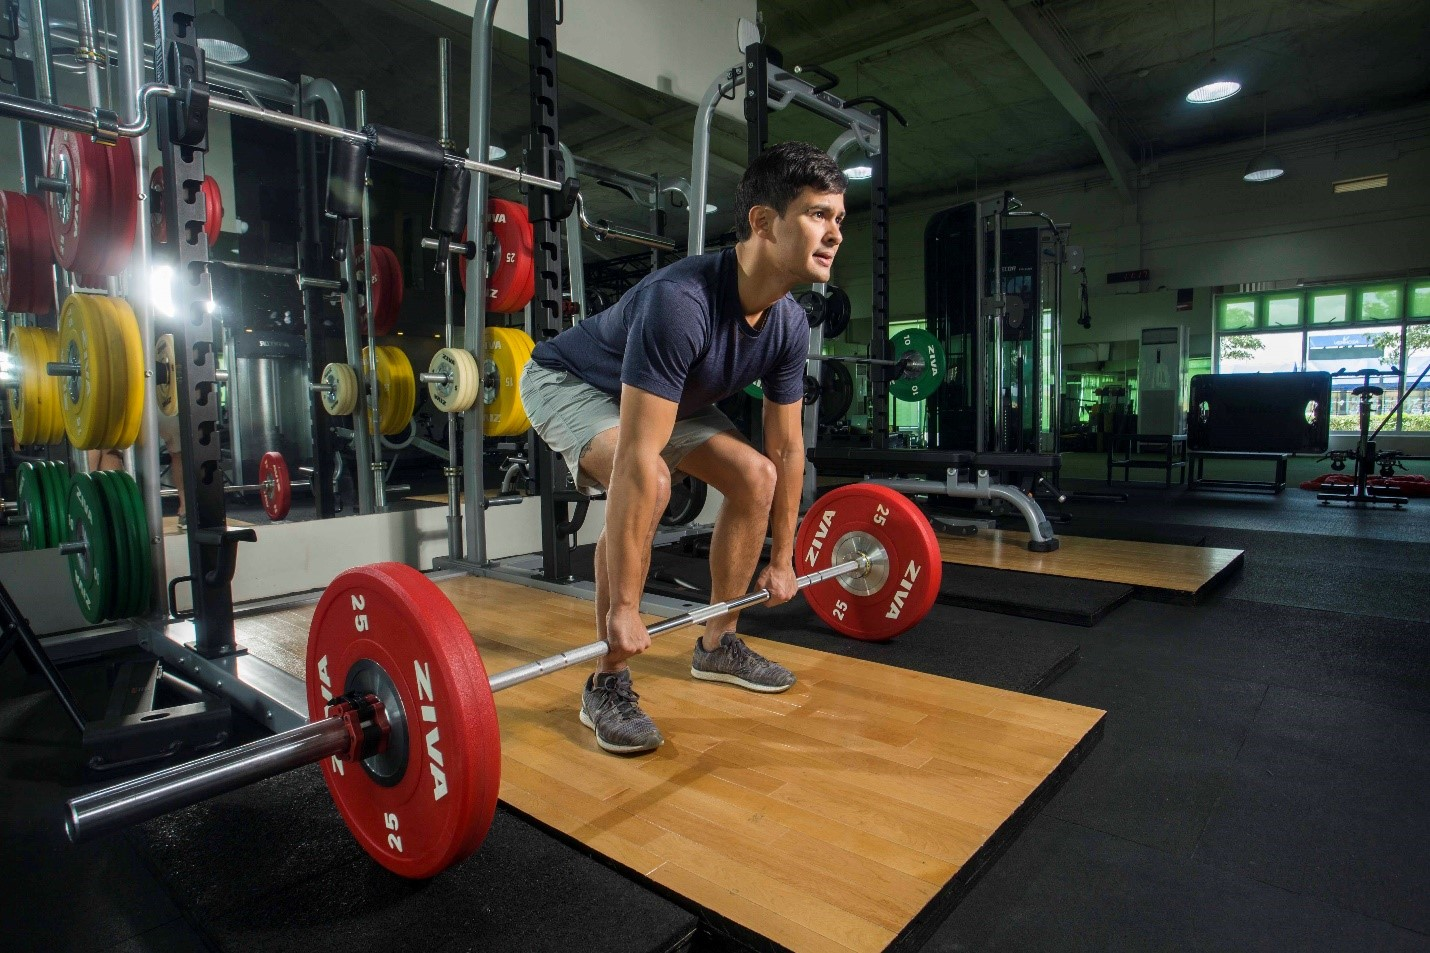 Staying fit and strong amid COVID-19 pandemic